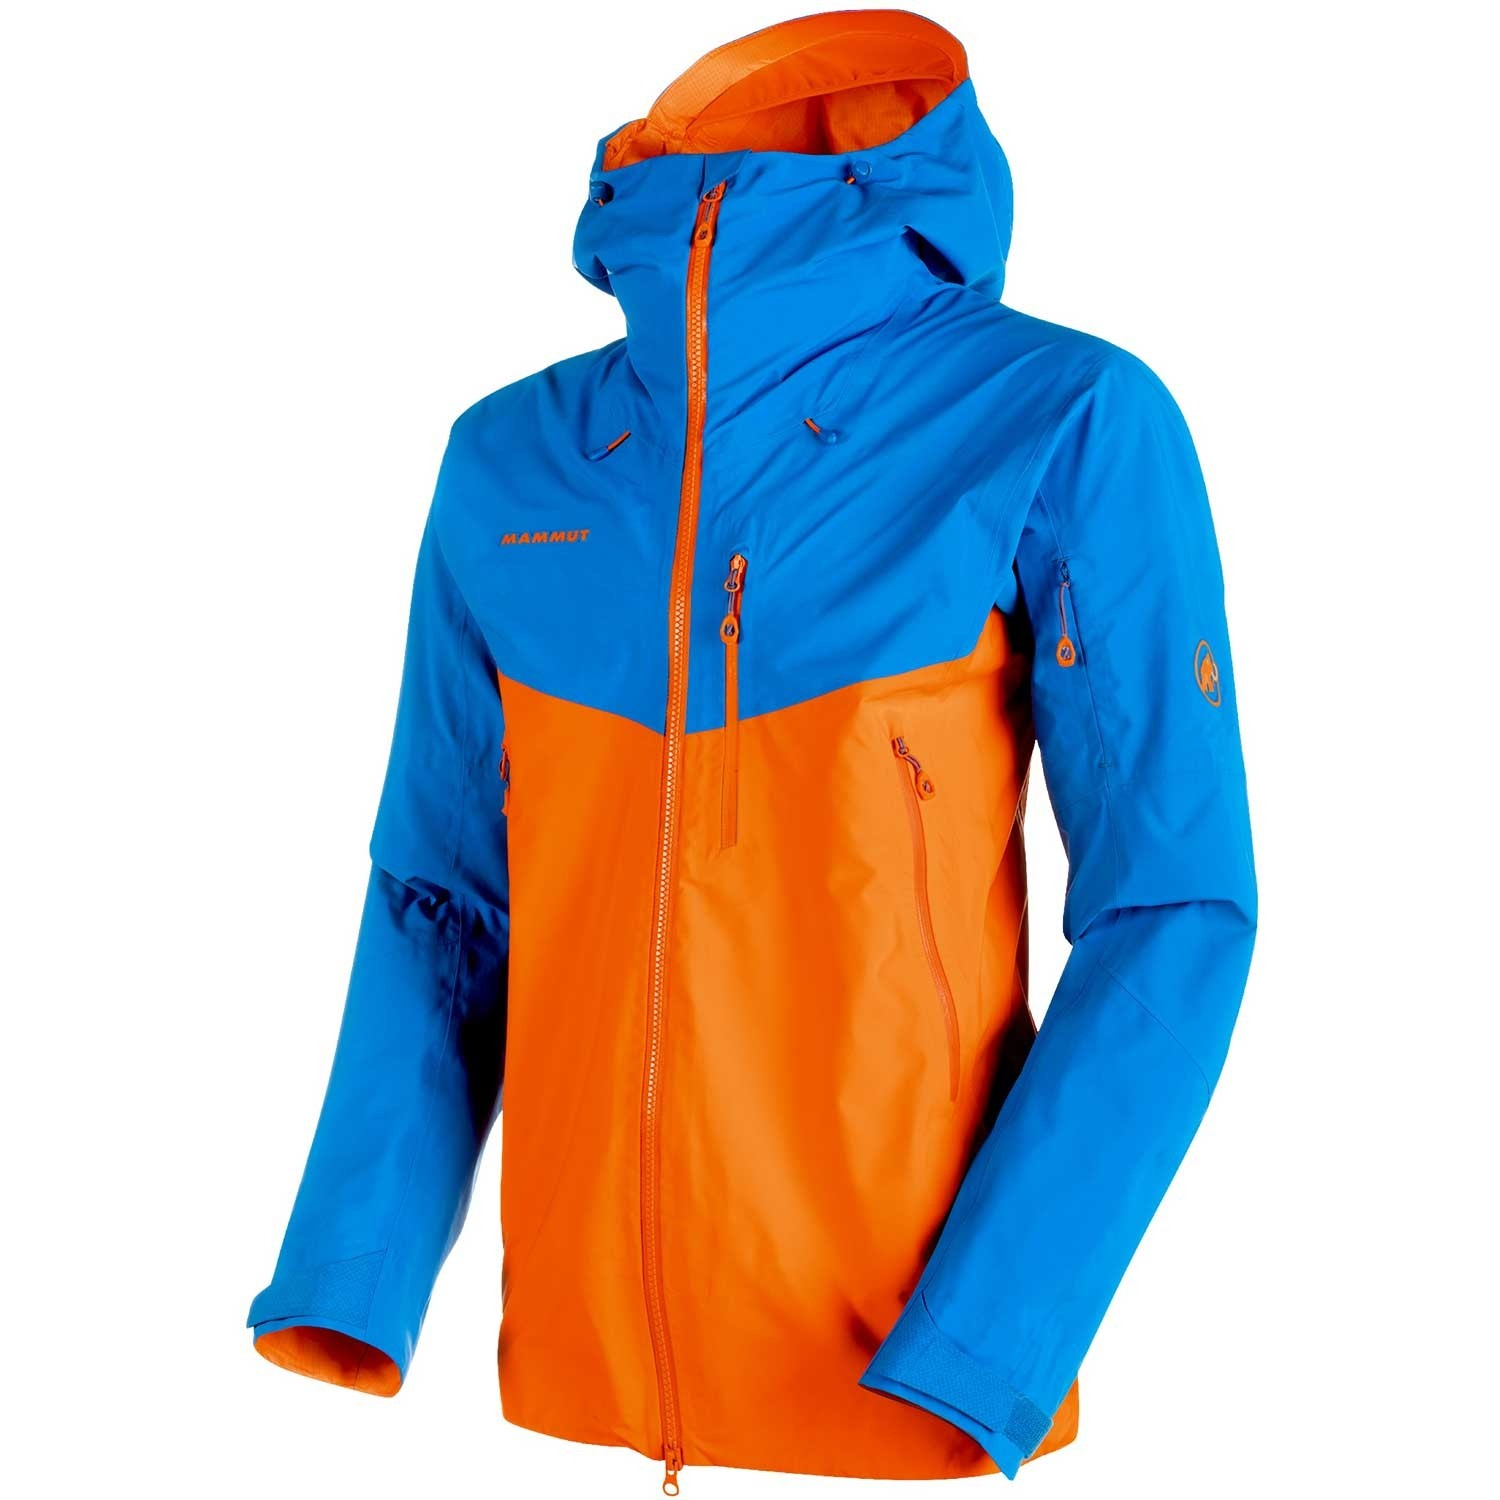 Eiger Extreme Nordwand Pro HS Hooded Jacket - Men's - Sunrise/Ice